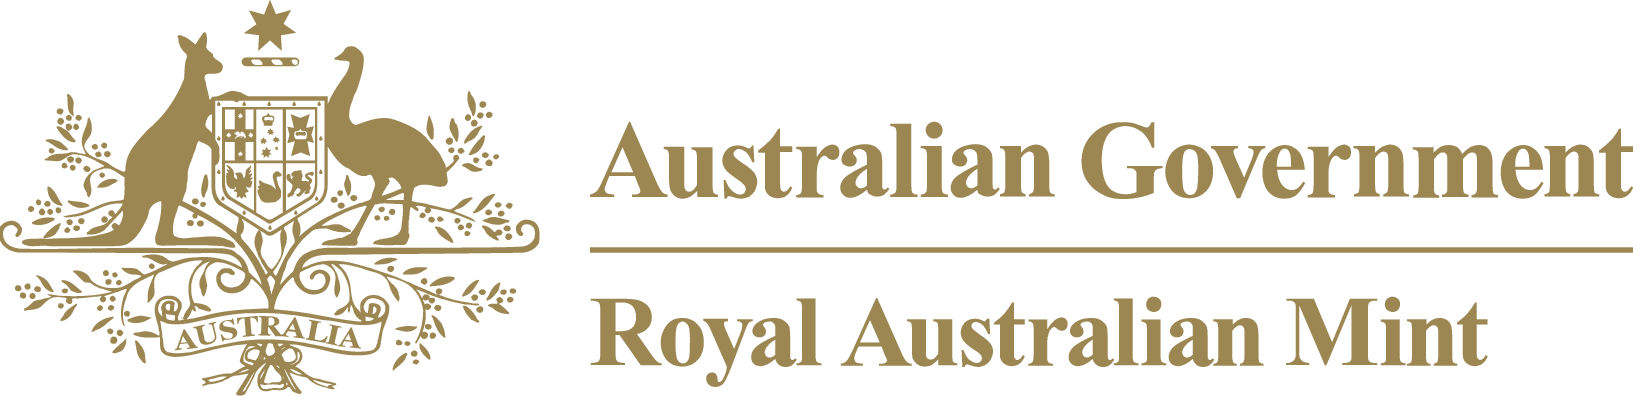 royal-australian-mint-logo